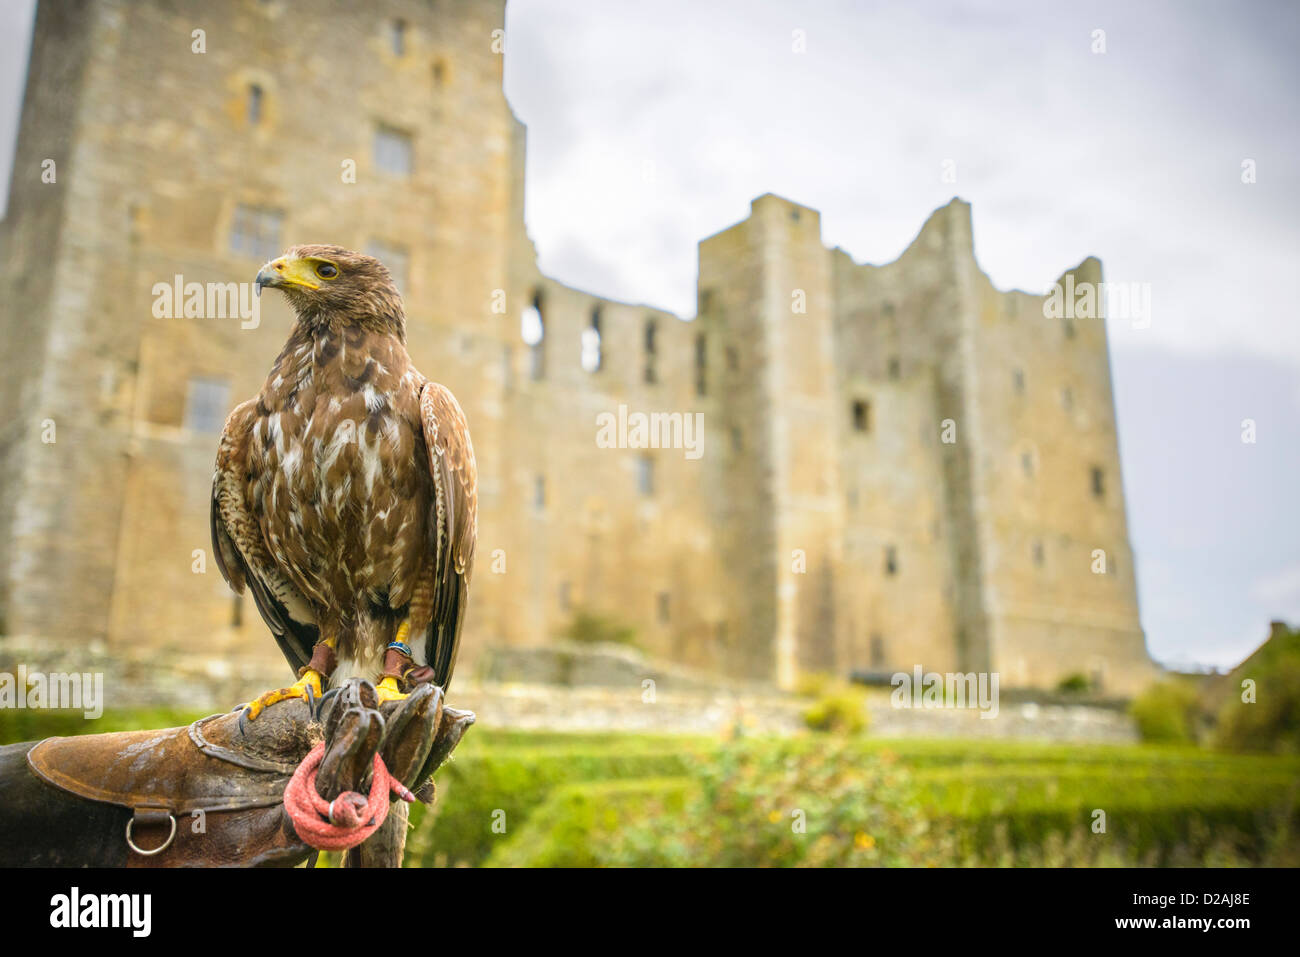 Hawk perched on trainers gauntlet - Stock Image